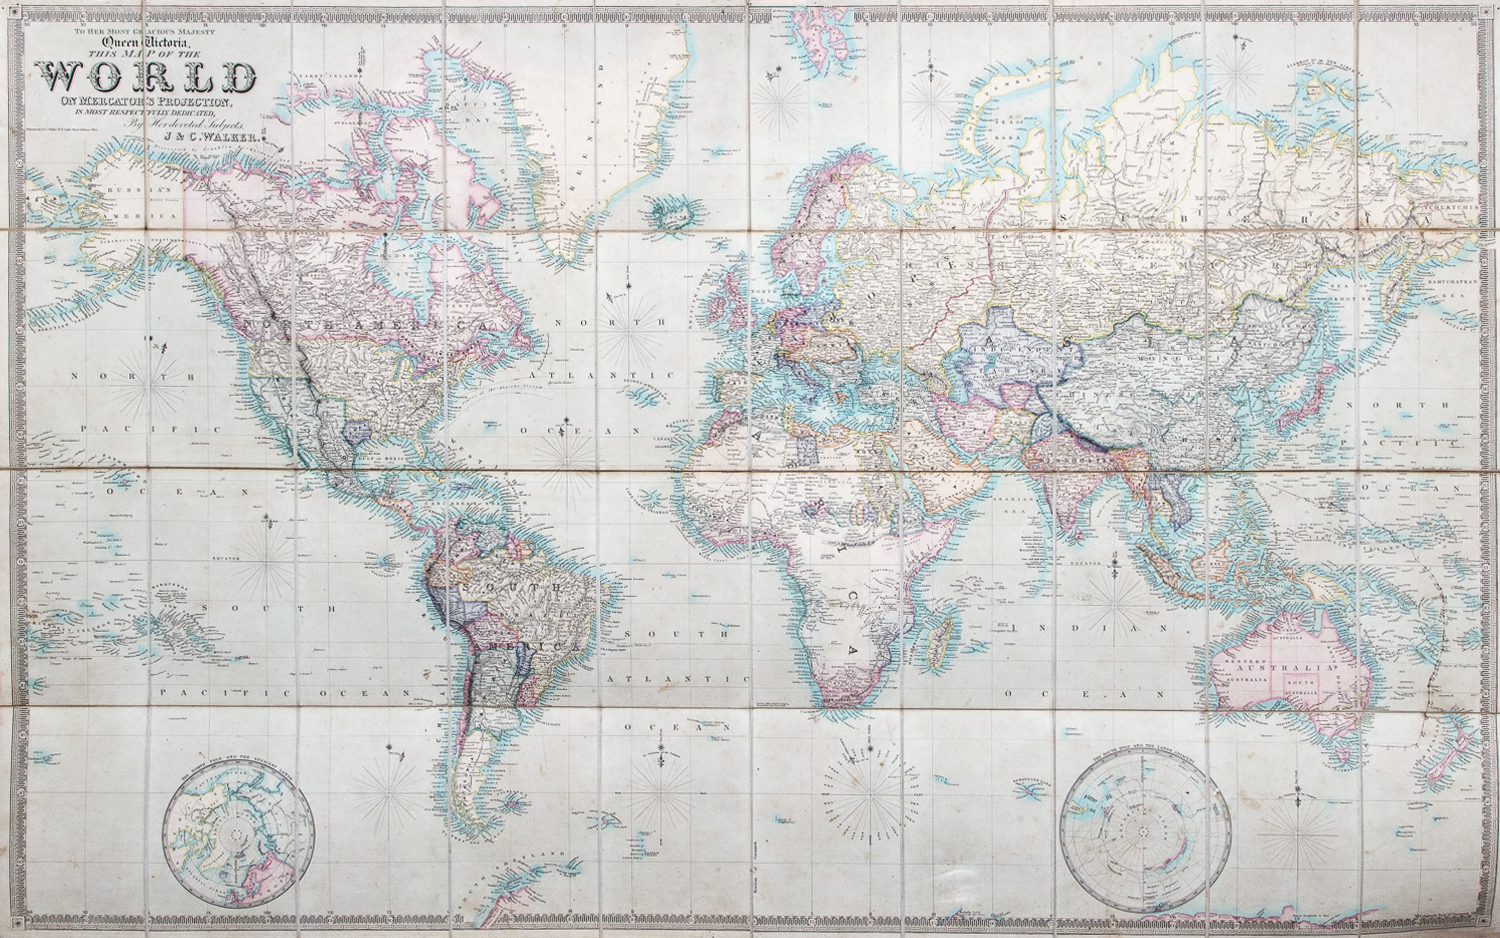 Victoria London Map.To Her Most Gracious Majesty Queen Victoria This Map Of The World On Mercator S Projection Is Most Respectfully Dedicated By Her Devoted Subjects